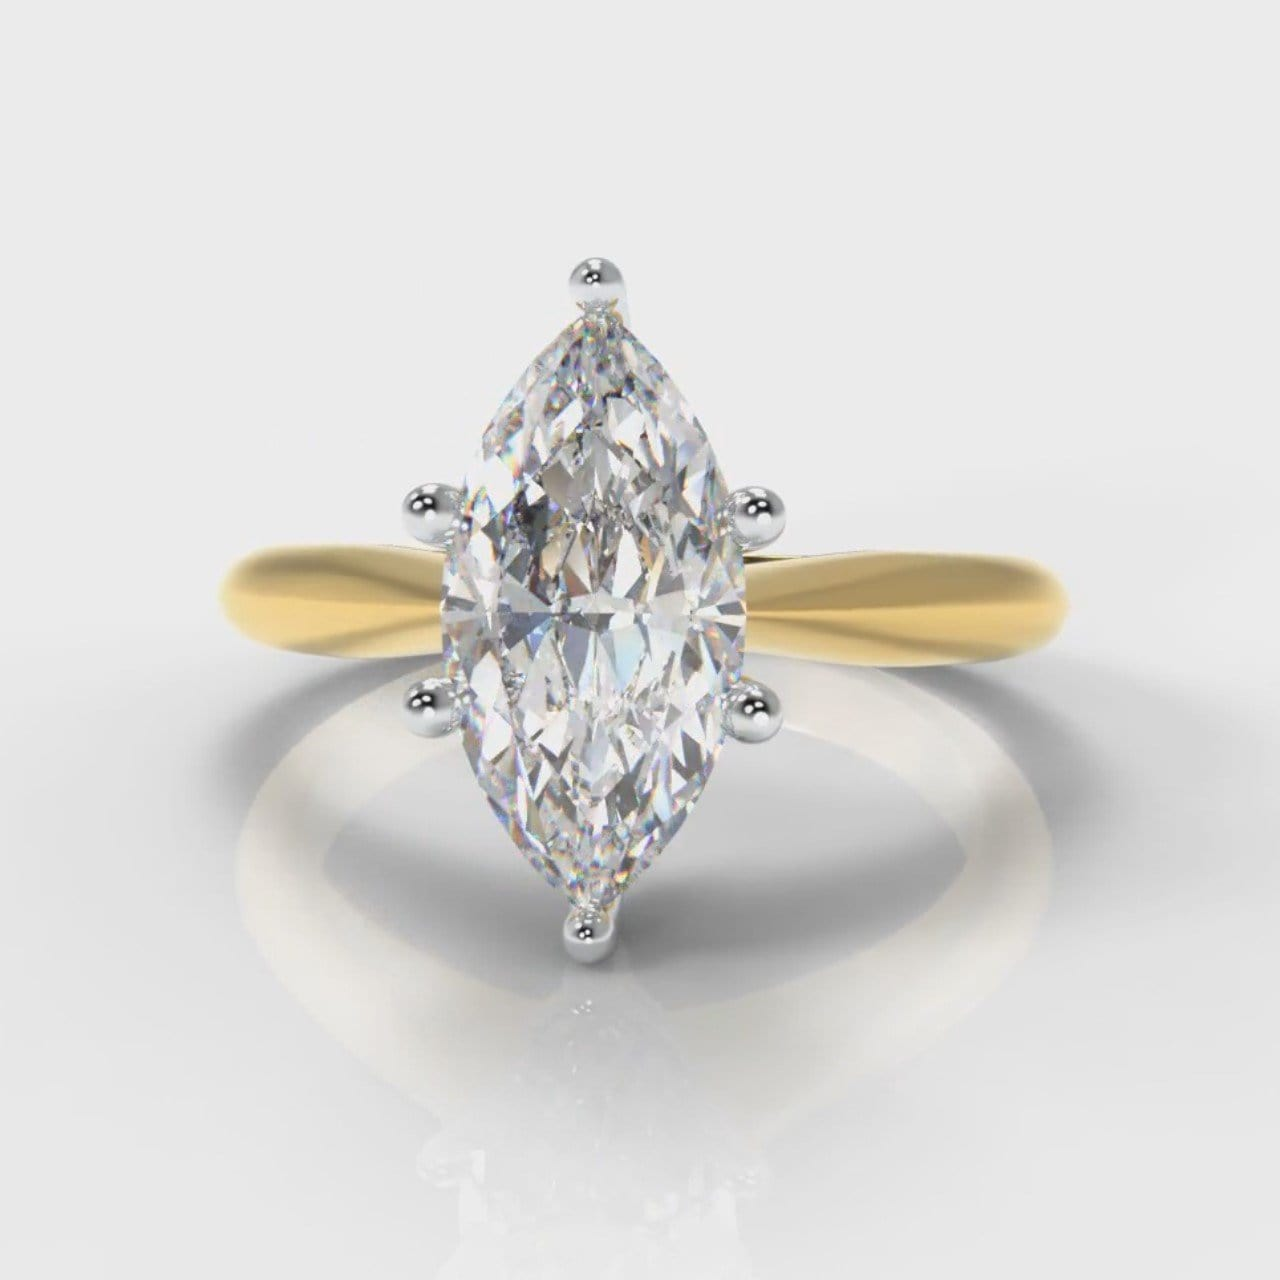 Star Solitaire Marquise Diamond Engagement Ring - Yellow Gold